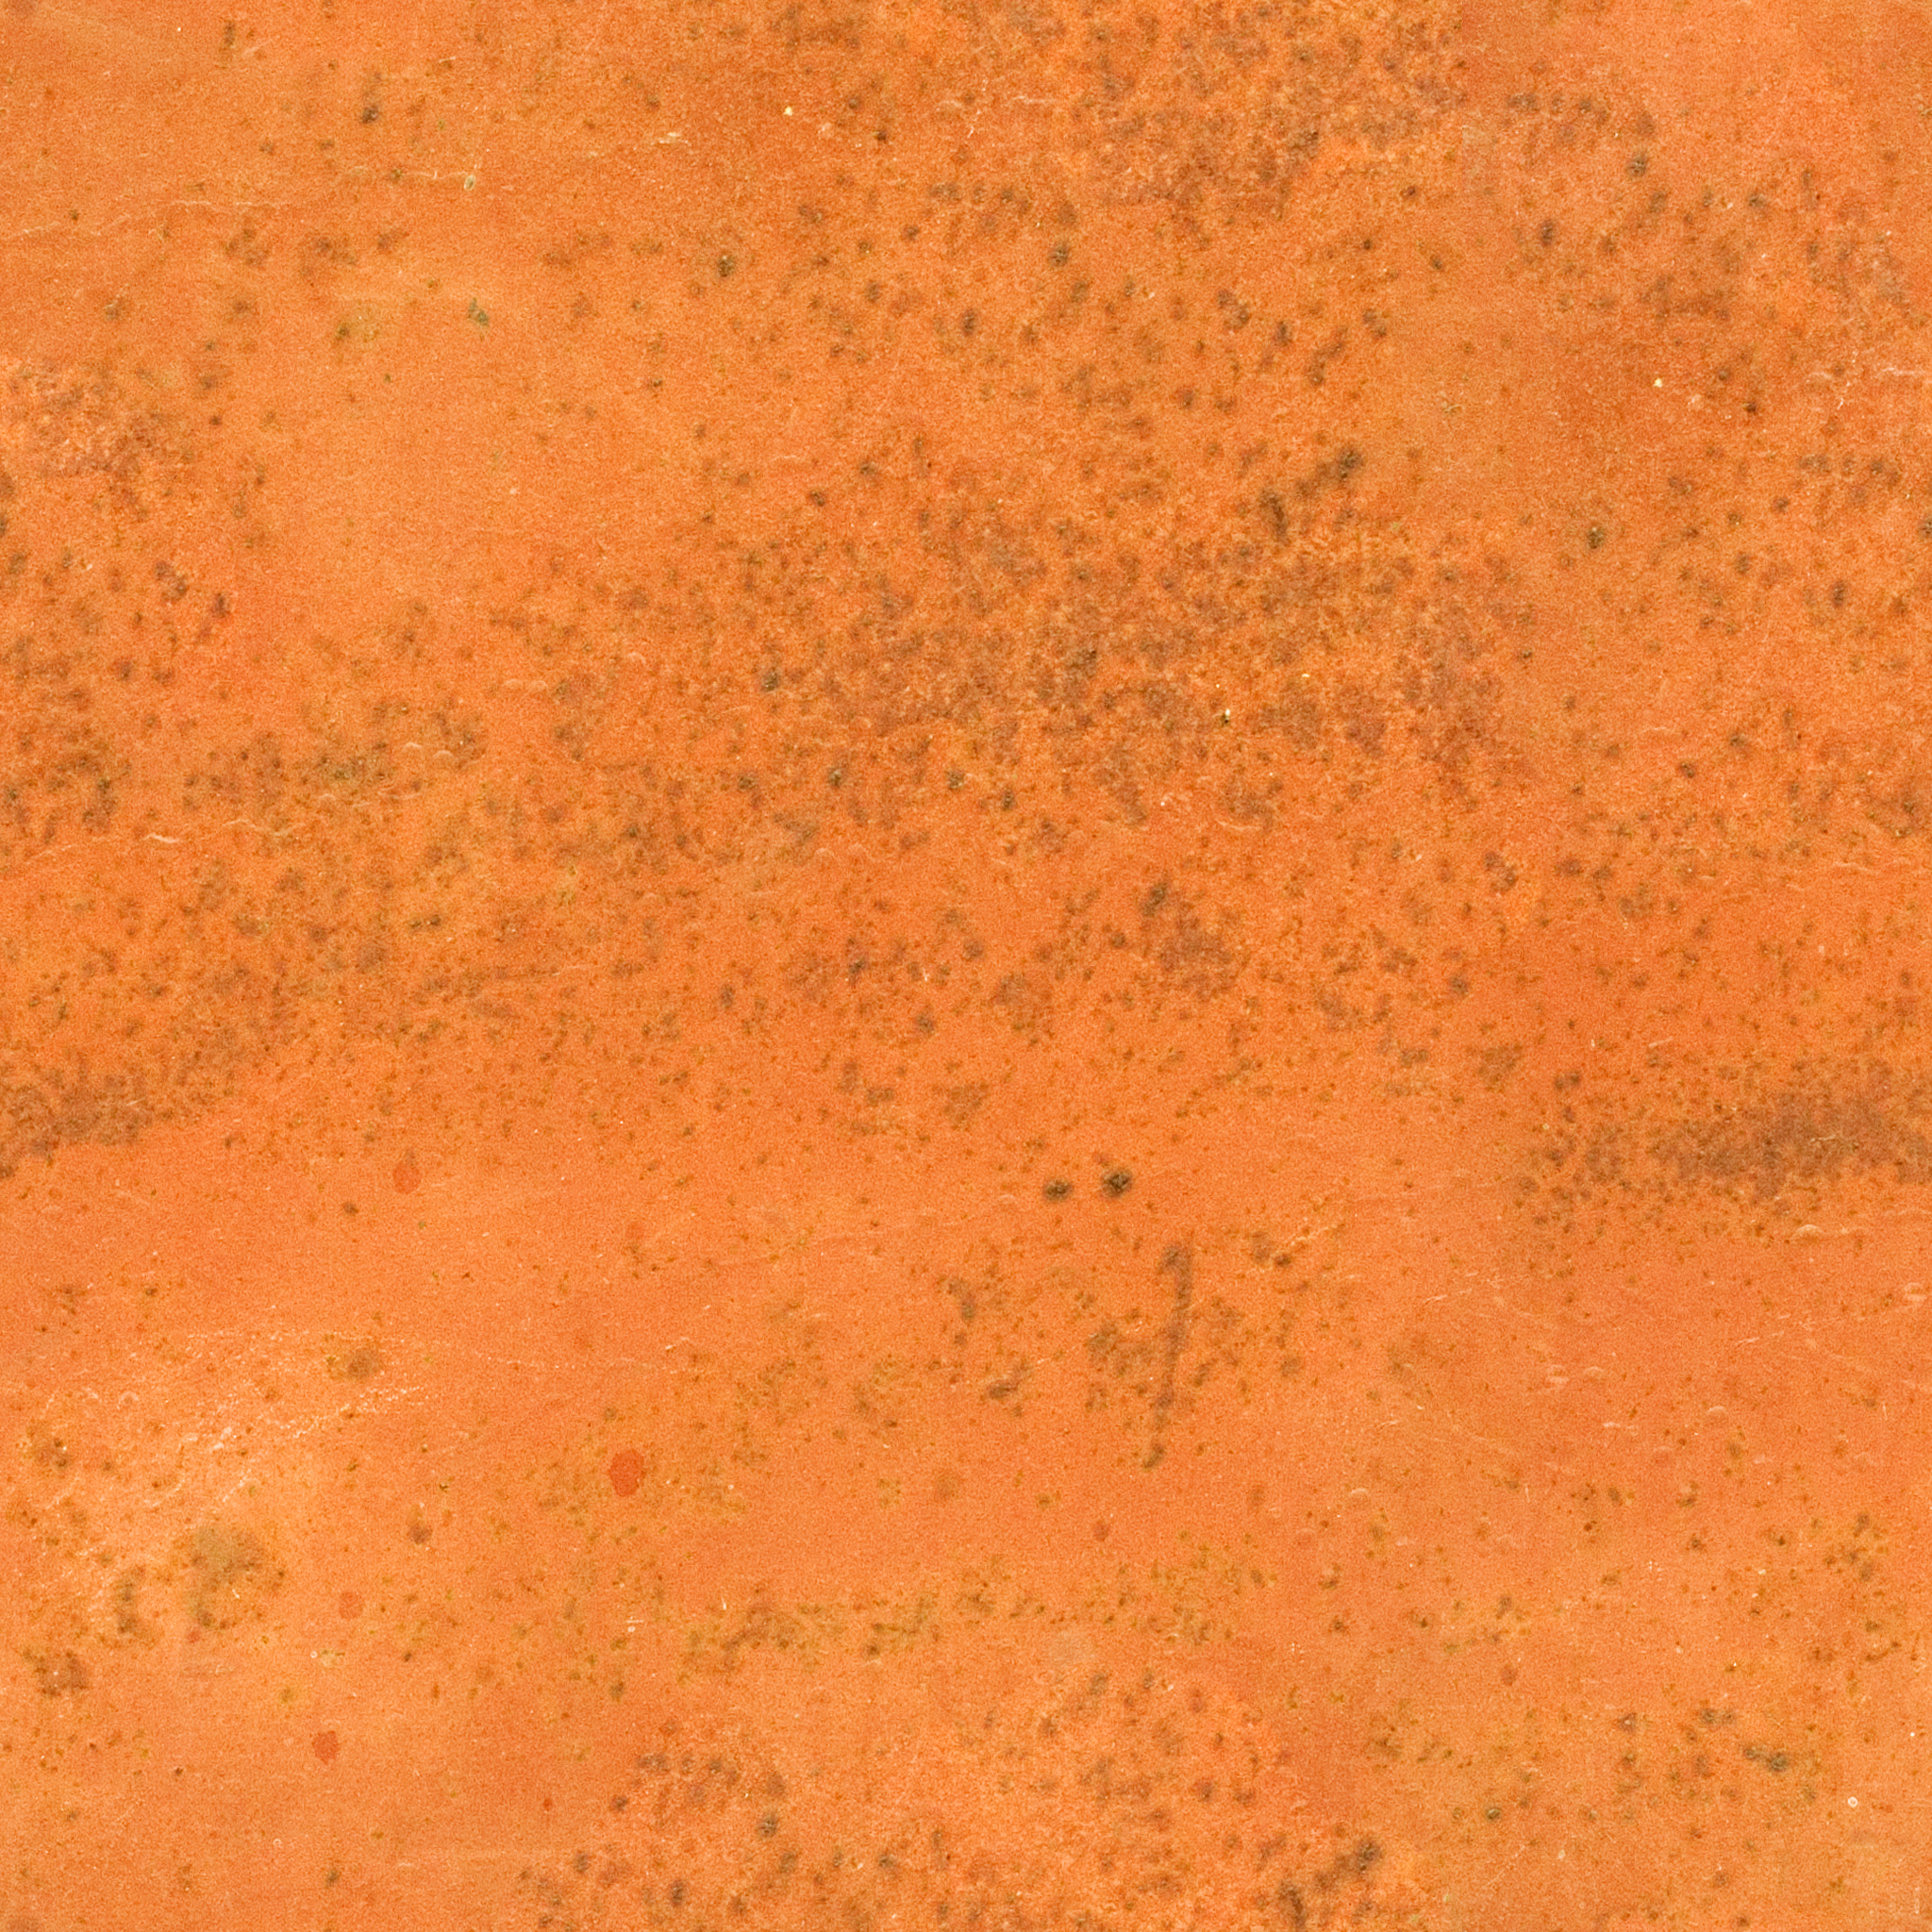 Bright Orange Rust.jpg